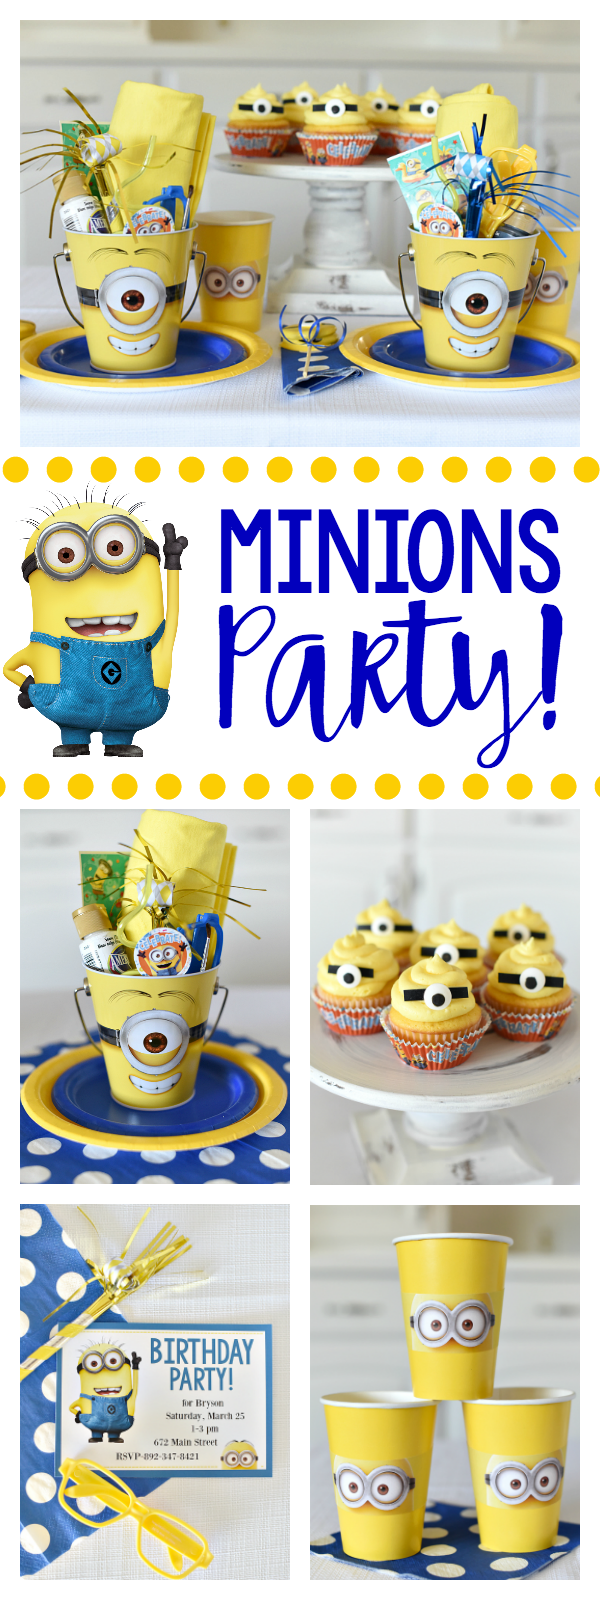 Minion Party Ideas for a Kid's Minion Birthday Party! Invitations, Decorations, Food, Favors and More!